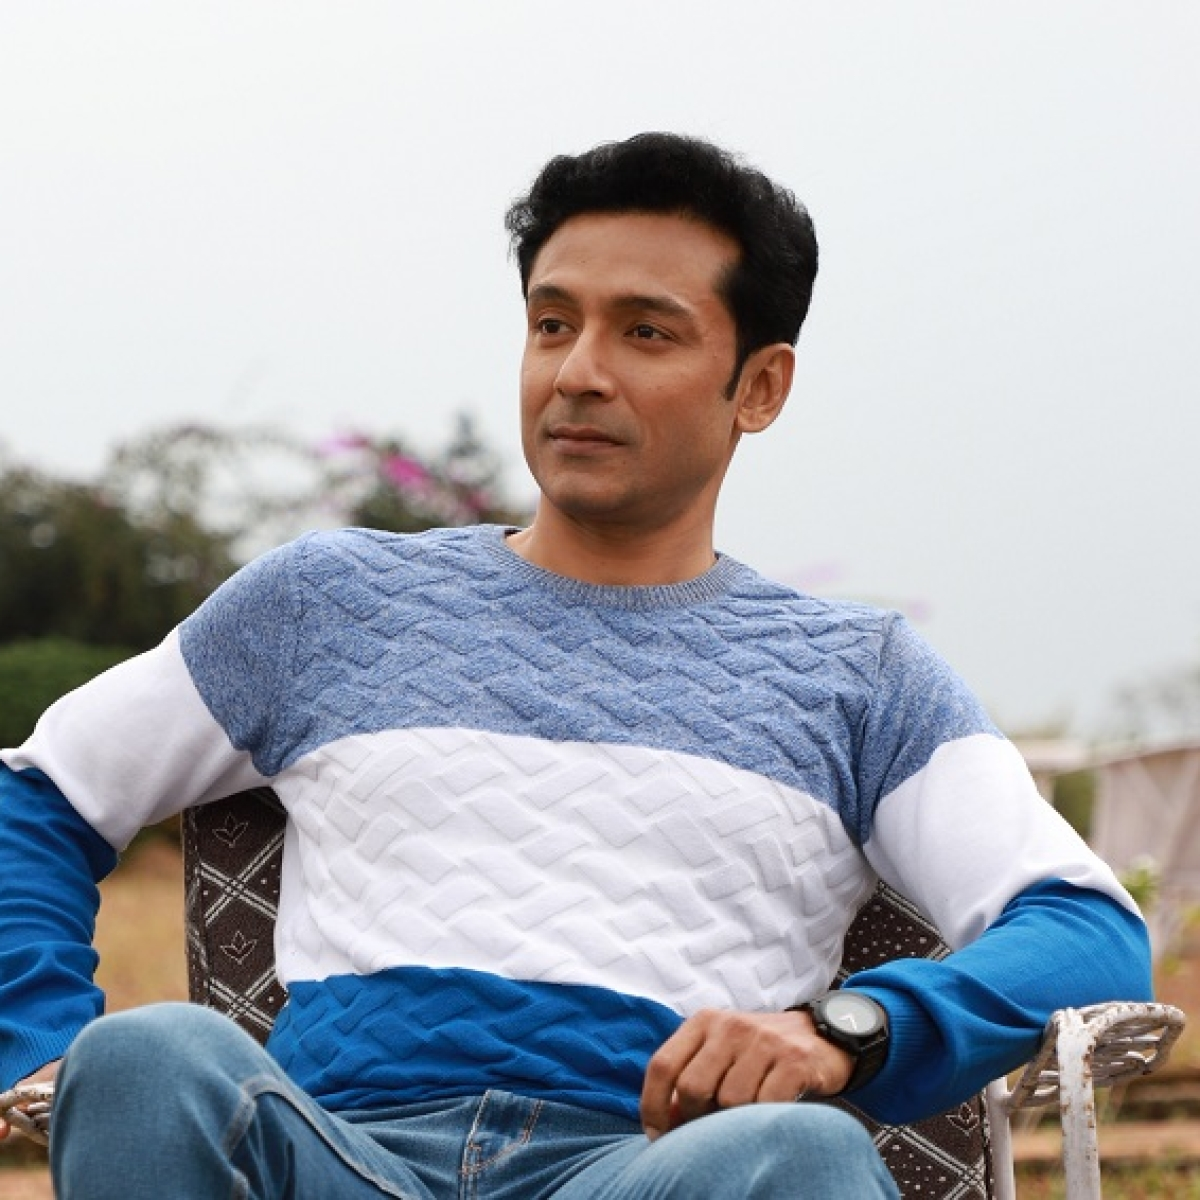 'Kahaani' actor Tota Roy Chowdhury reveals how he has been flooded with offers owing to his OTT releases